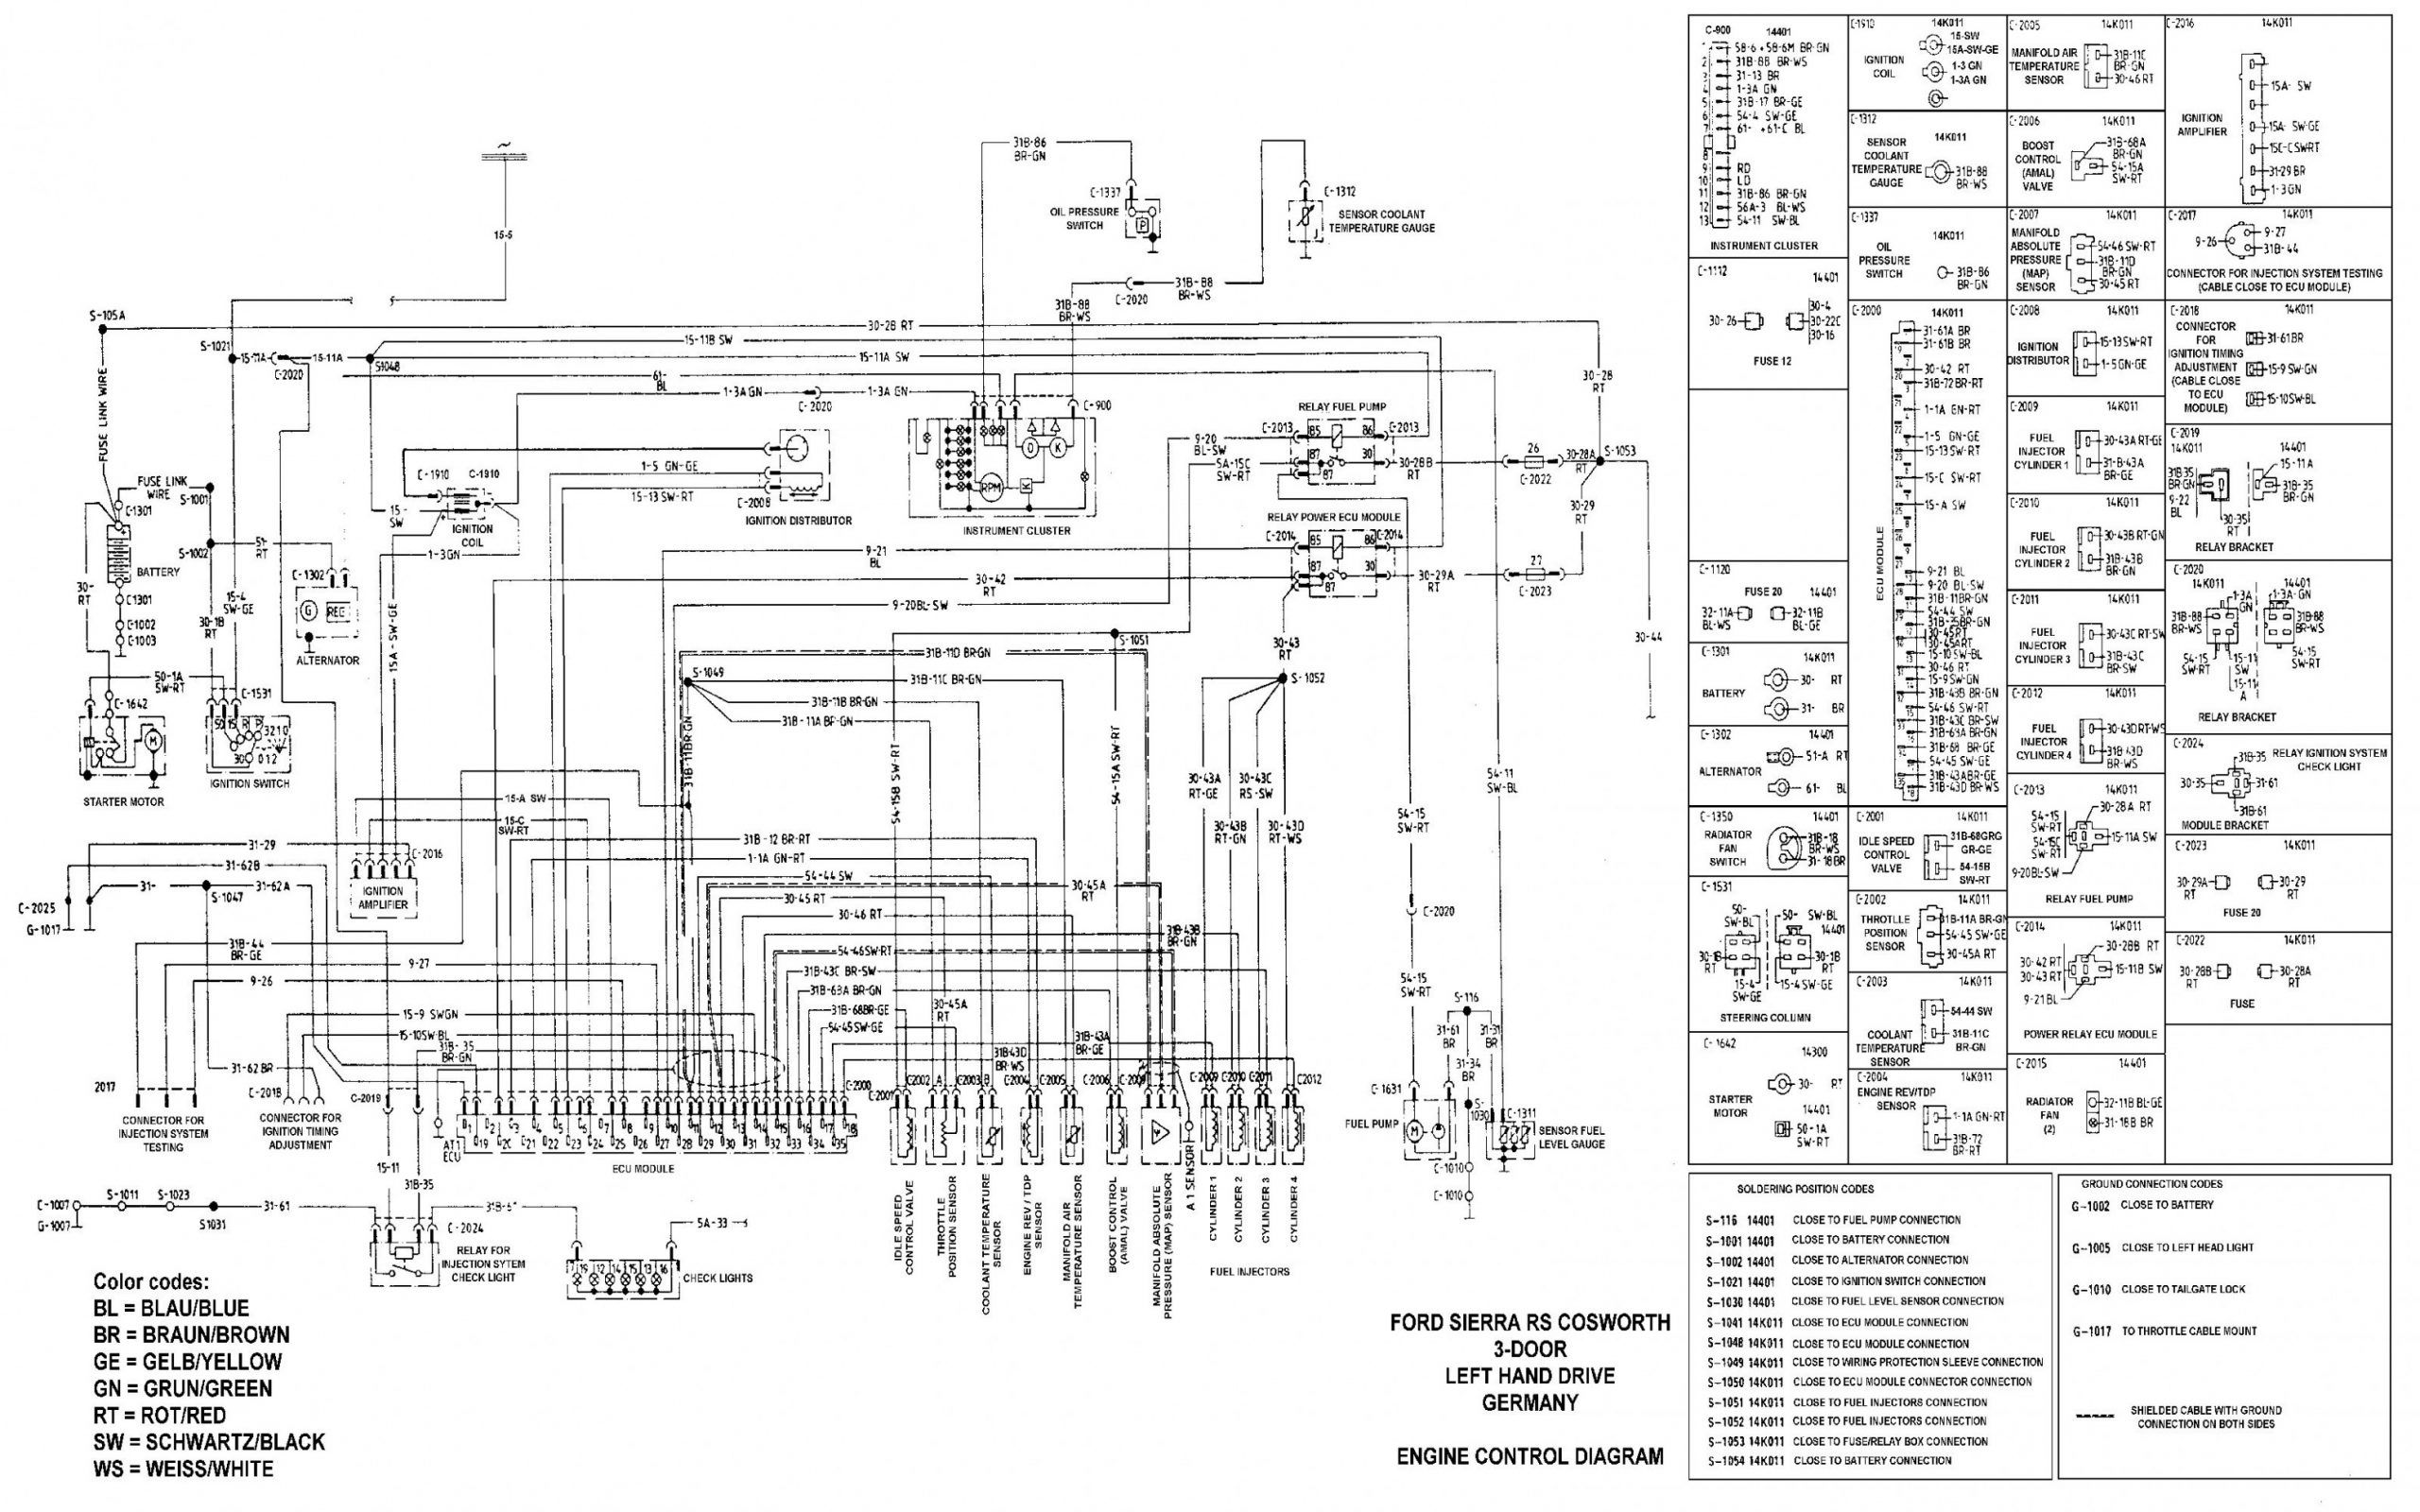 Ford Focus 7 7 Tdci Engine Wiring Diagram Ford Focus 7 7